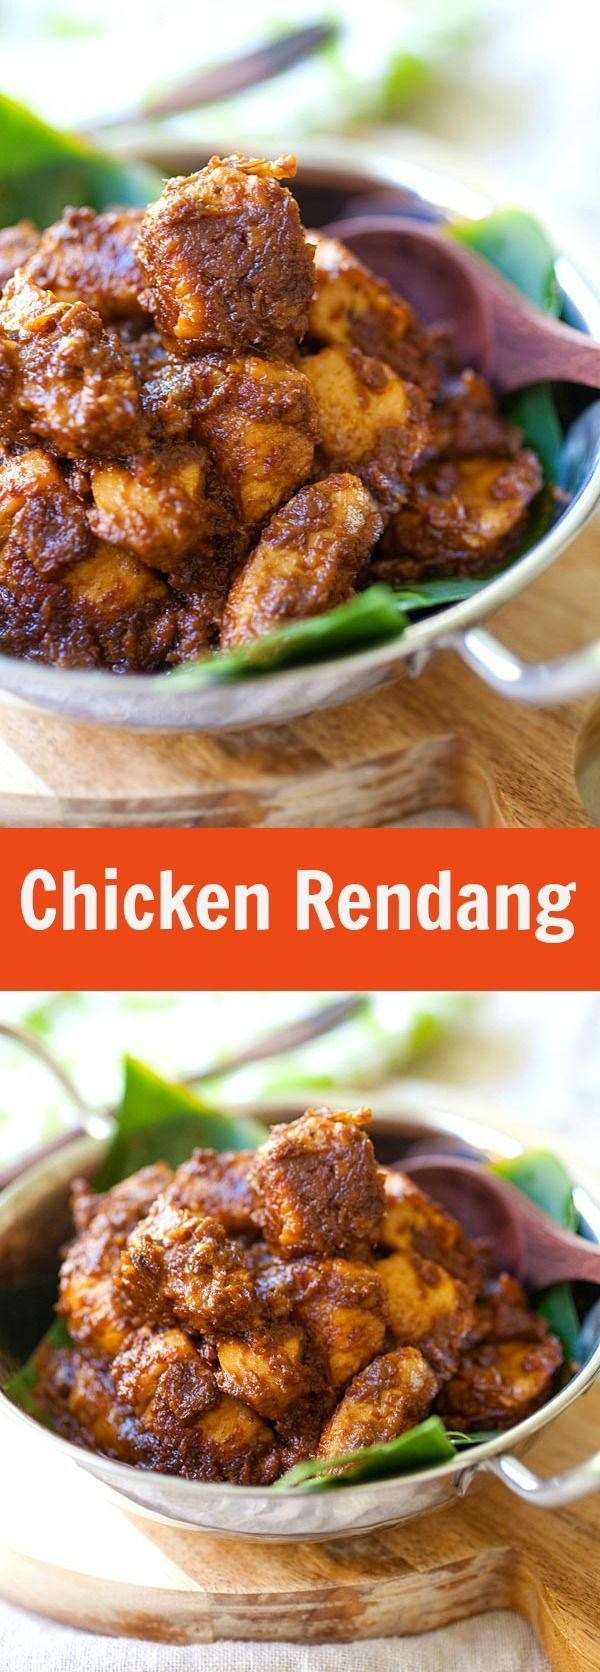 Chicken Rendang – amazing Malaysian-Indonesian chicken stew with spices and coconut milk. Deeply flavorful. The best rendang recipe ever | http://rasamalaysia.com